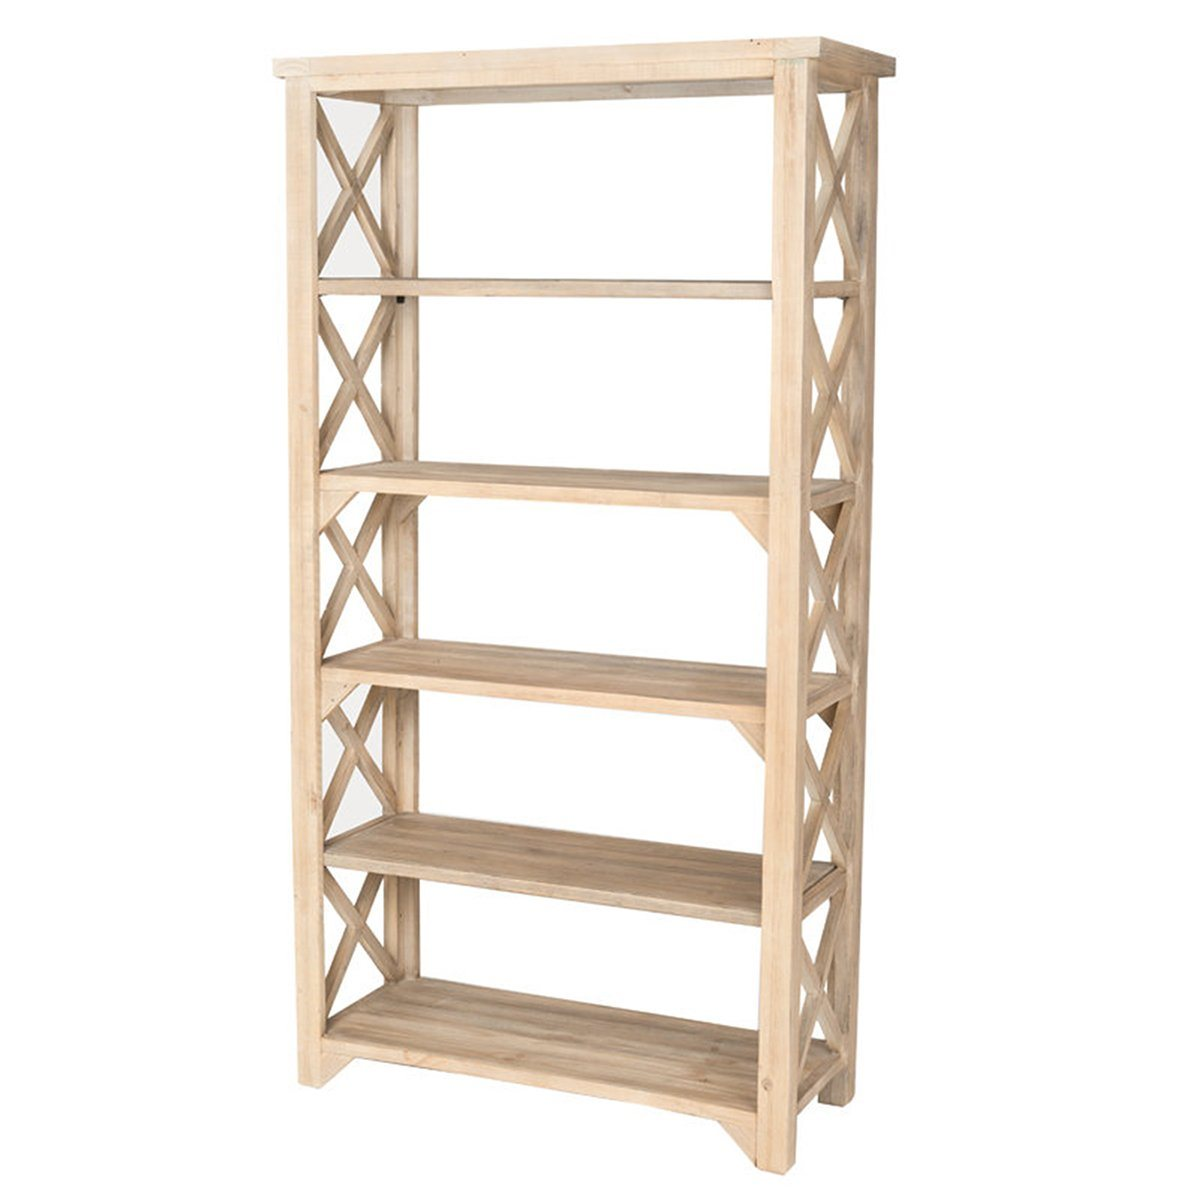 Tofino Bookcase - Showhome Furniture